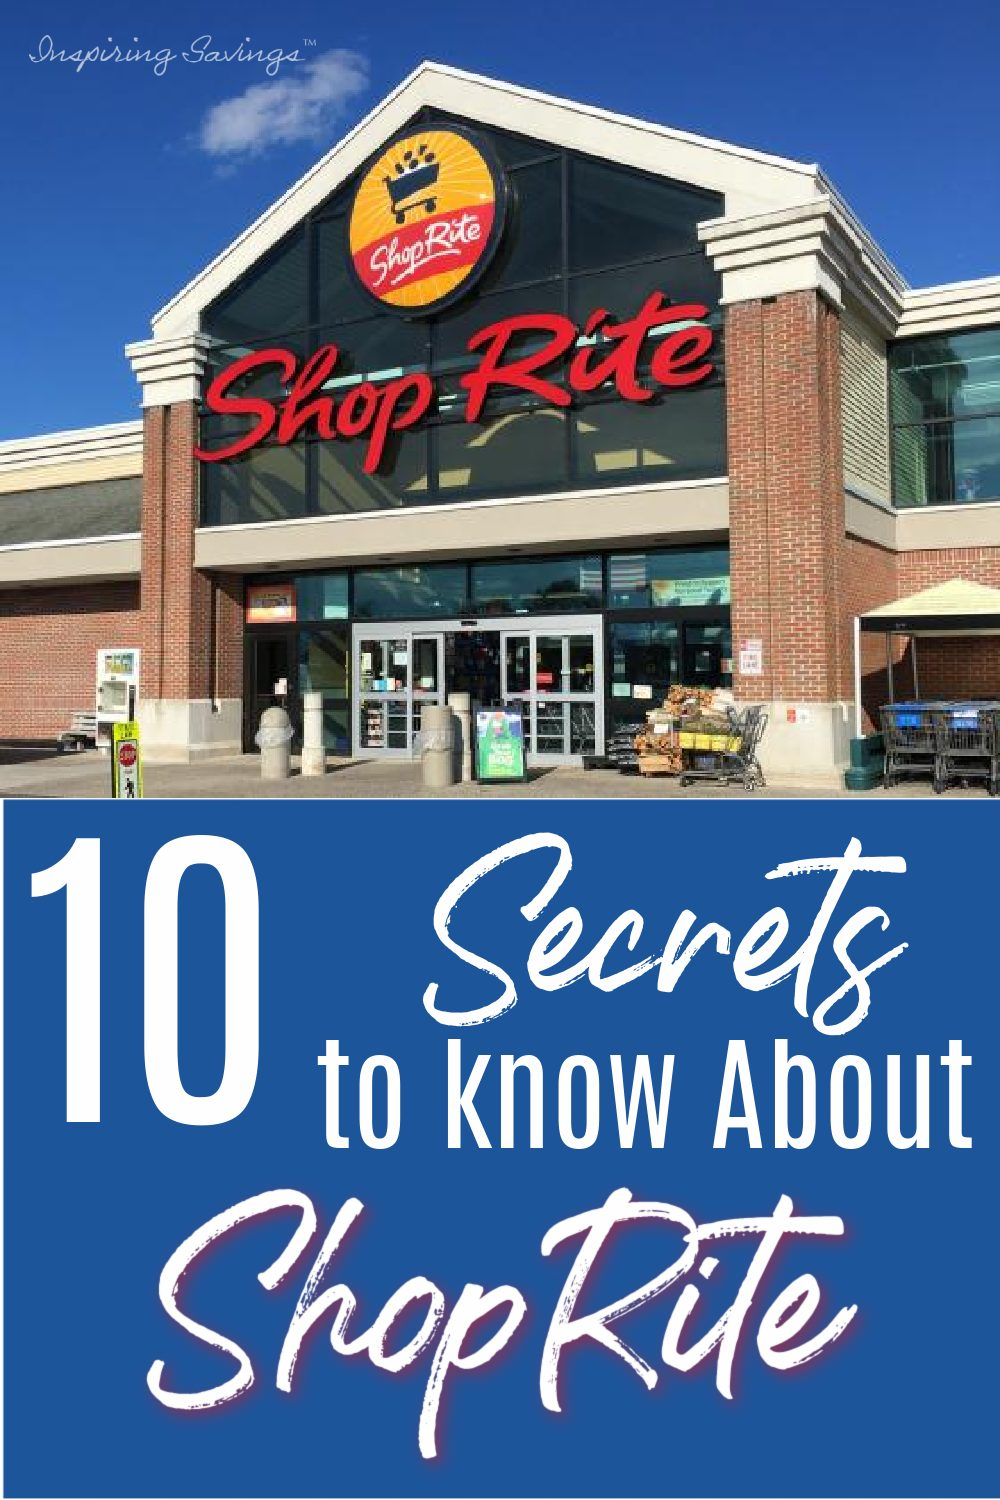 10 secrets to know about shoptRite